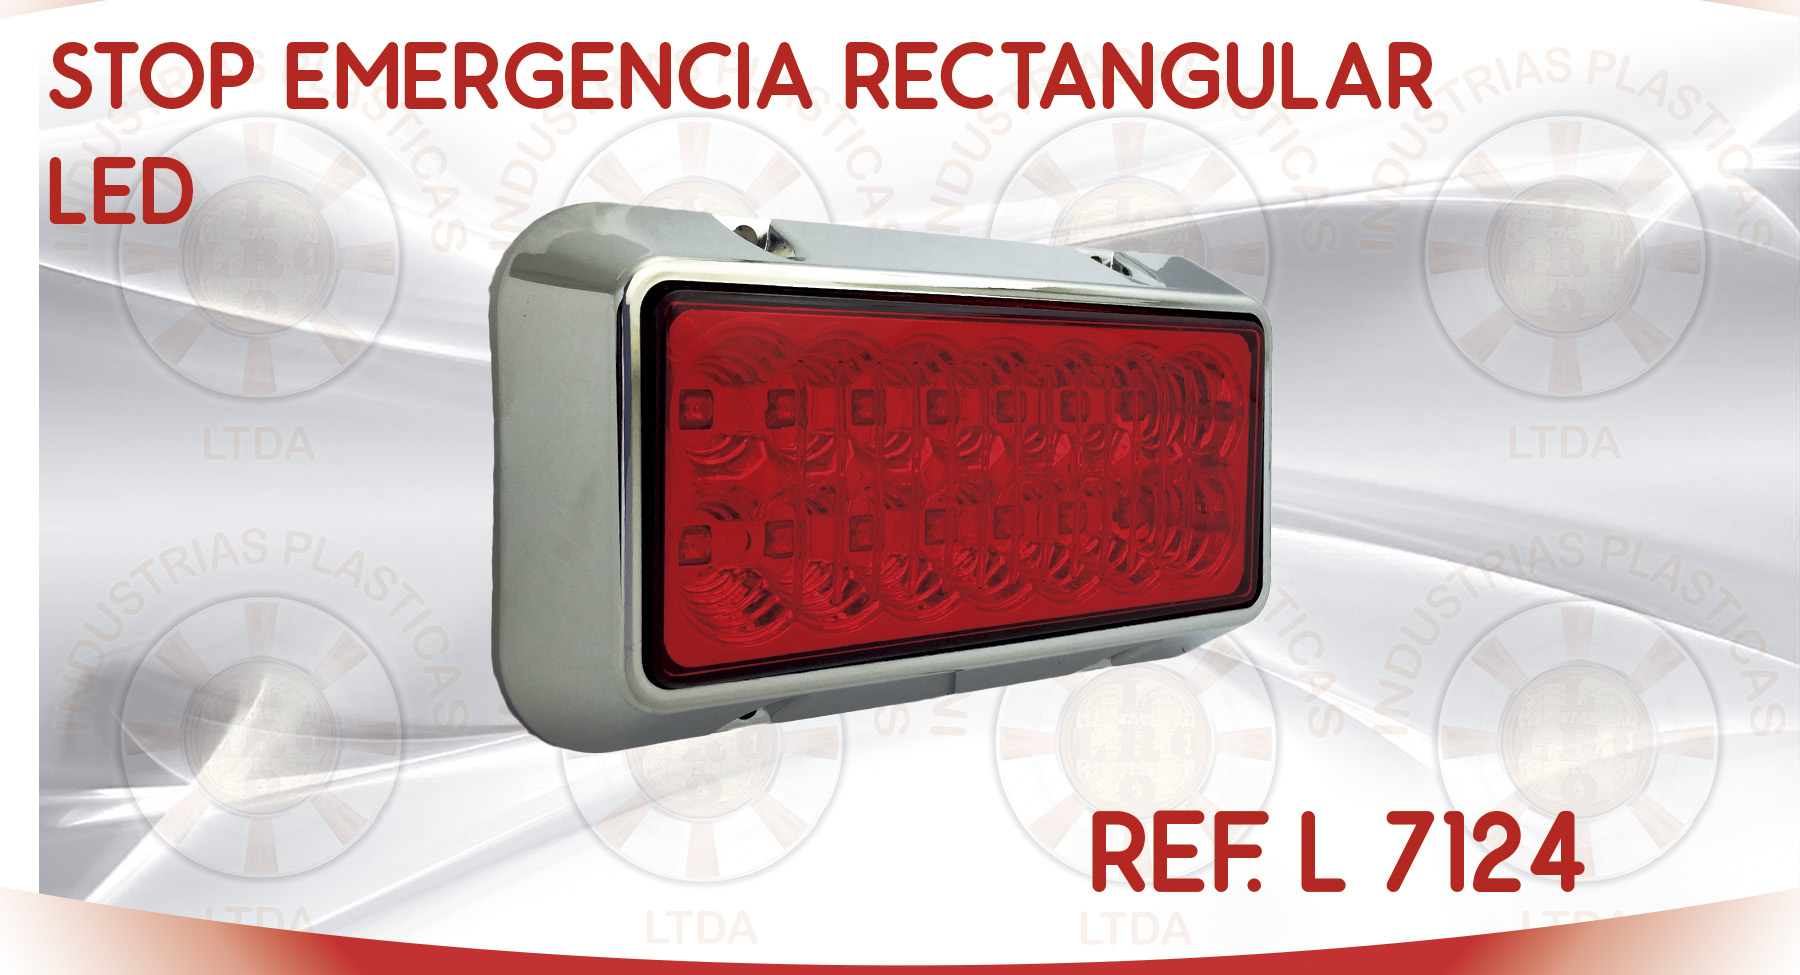 L 7124 STOP EMERGENCIA RECTANGULAR LED